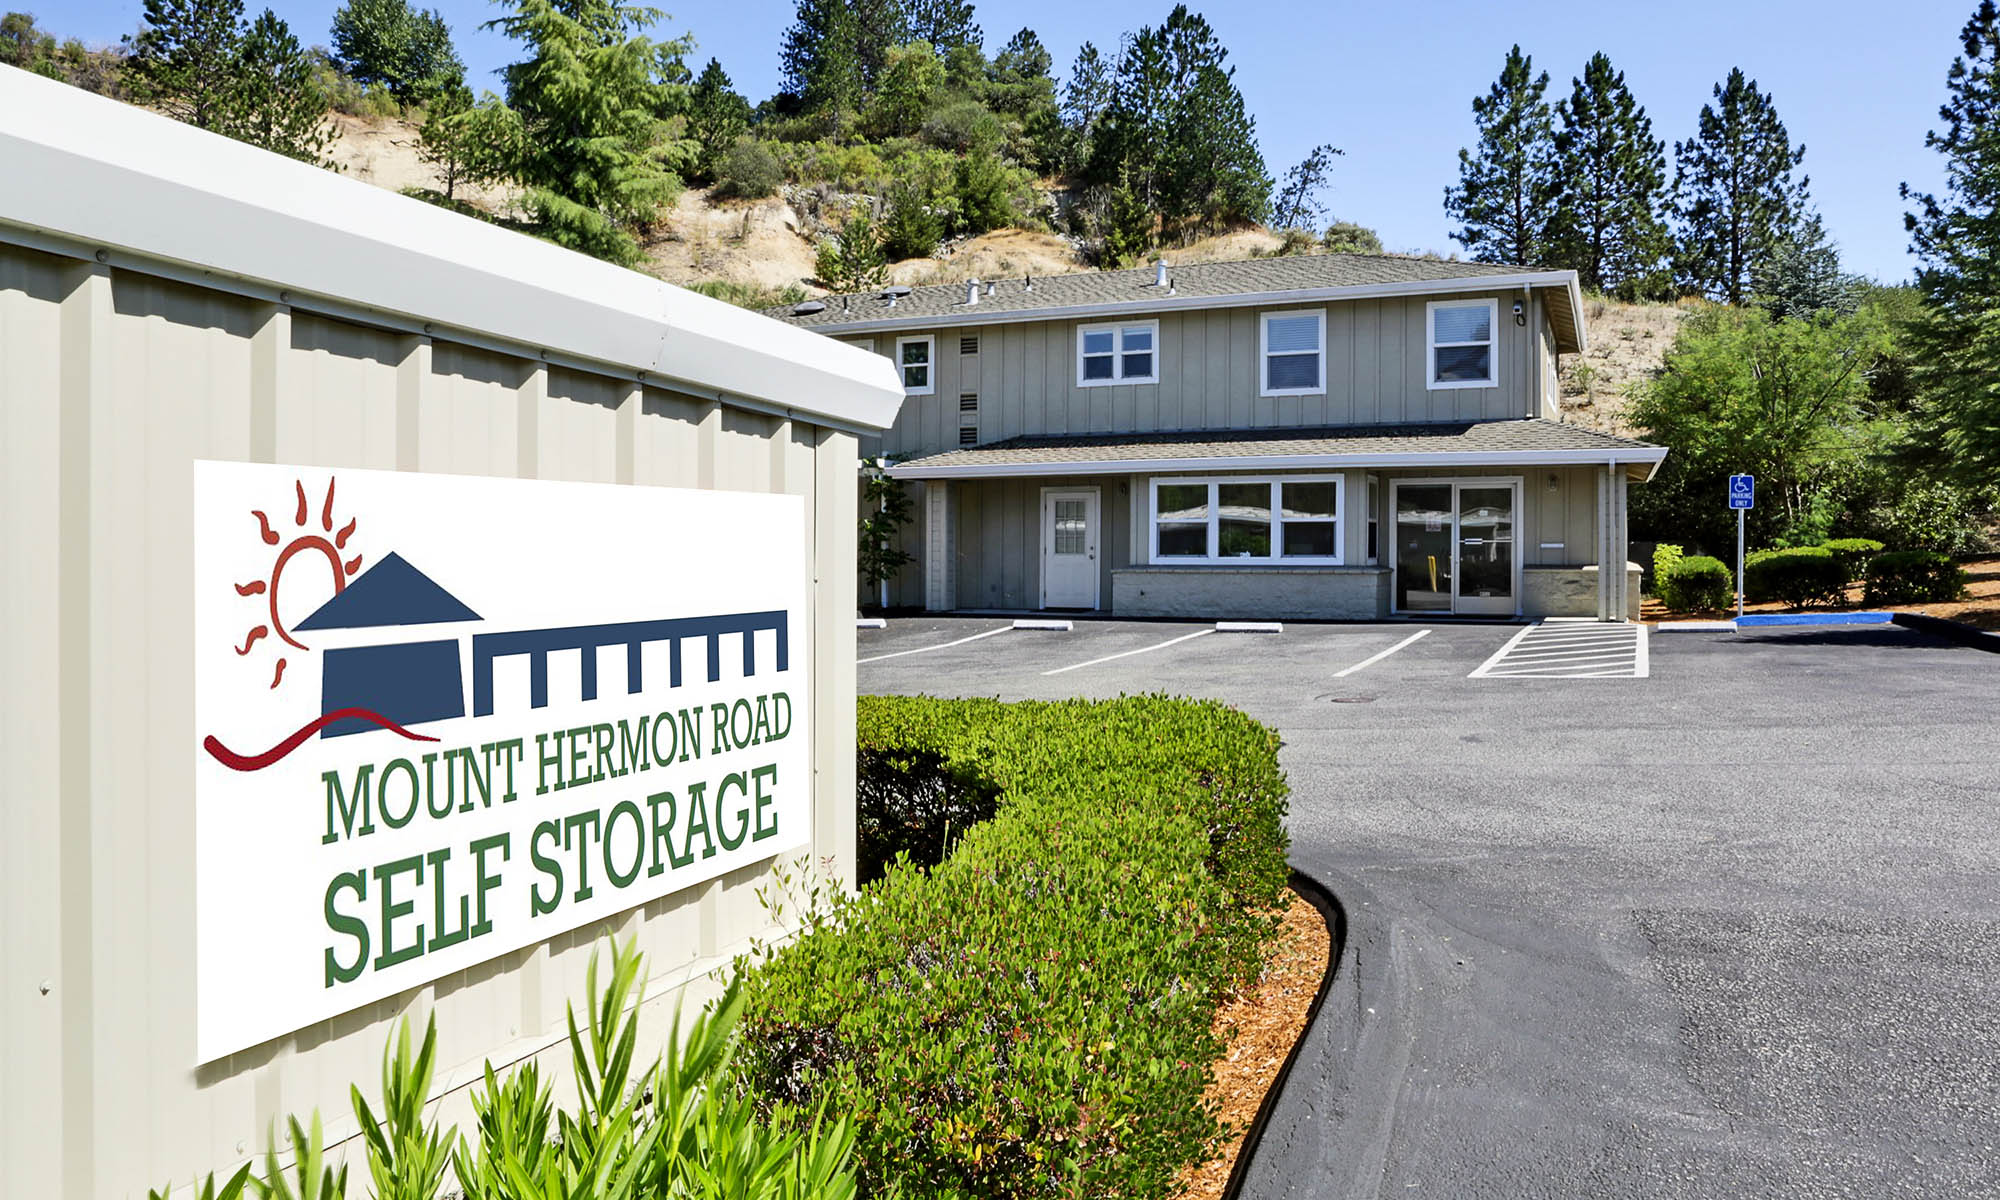 Mount Hermon Road Self Storage - Home of the 1st Year Price Guarantee!